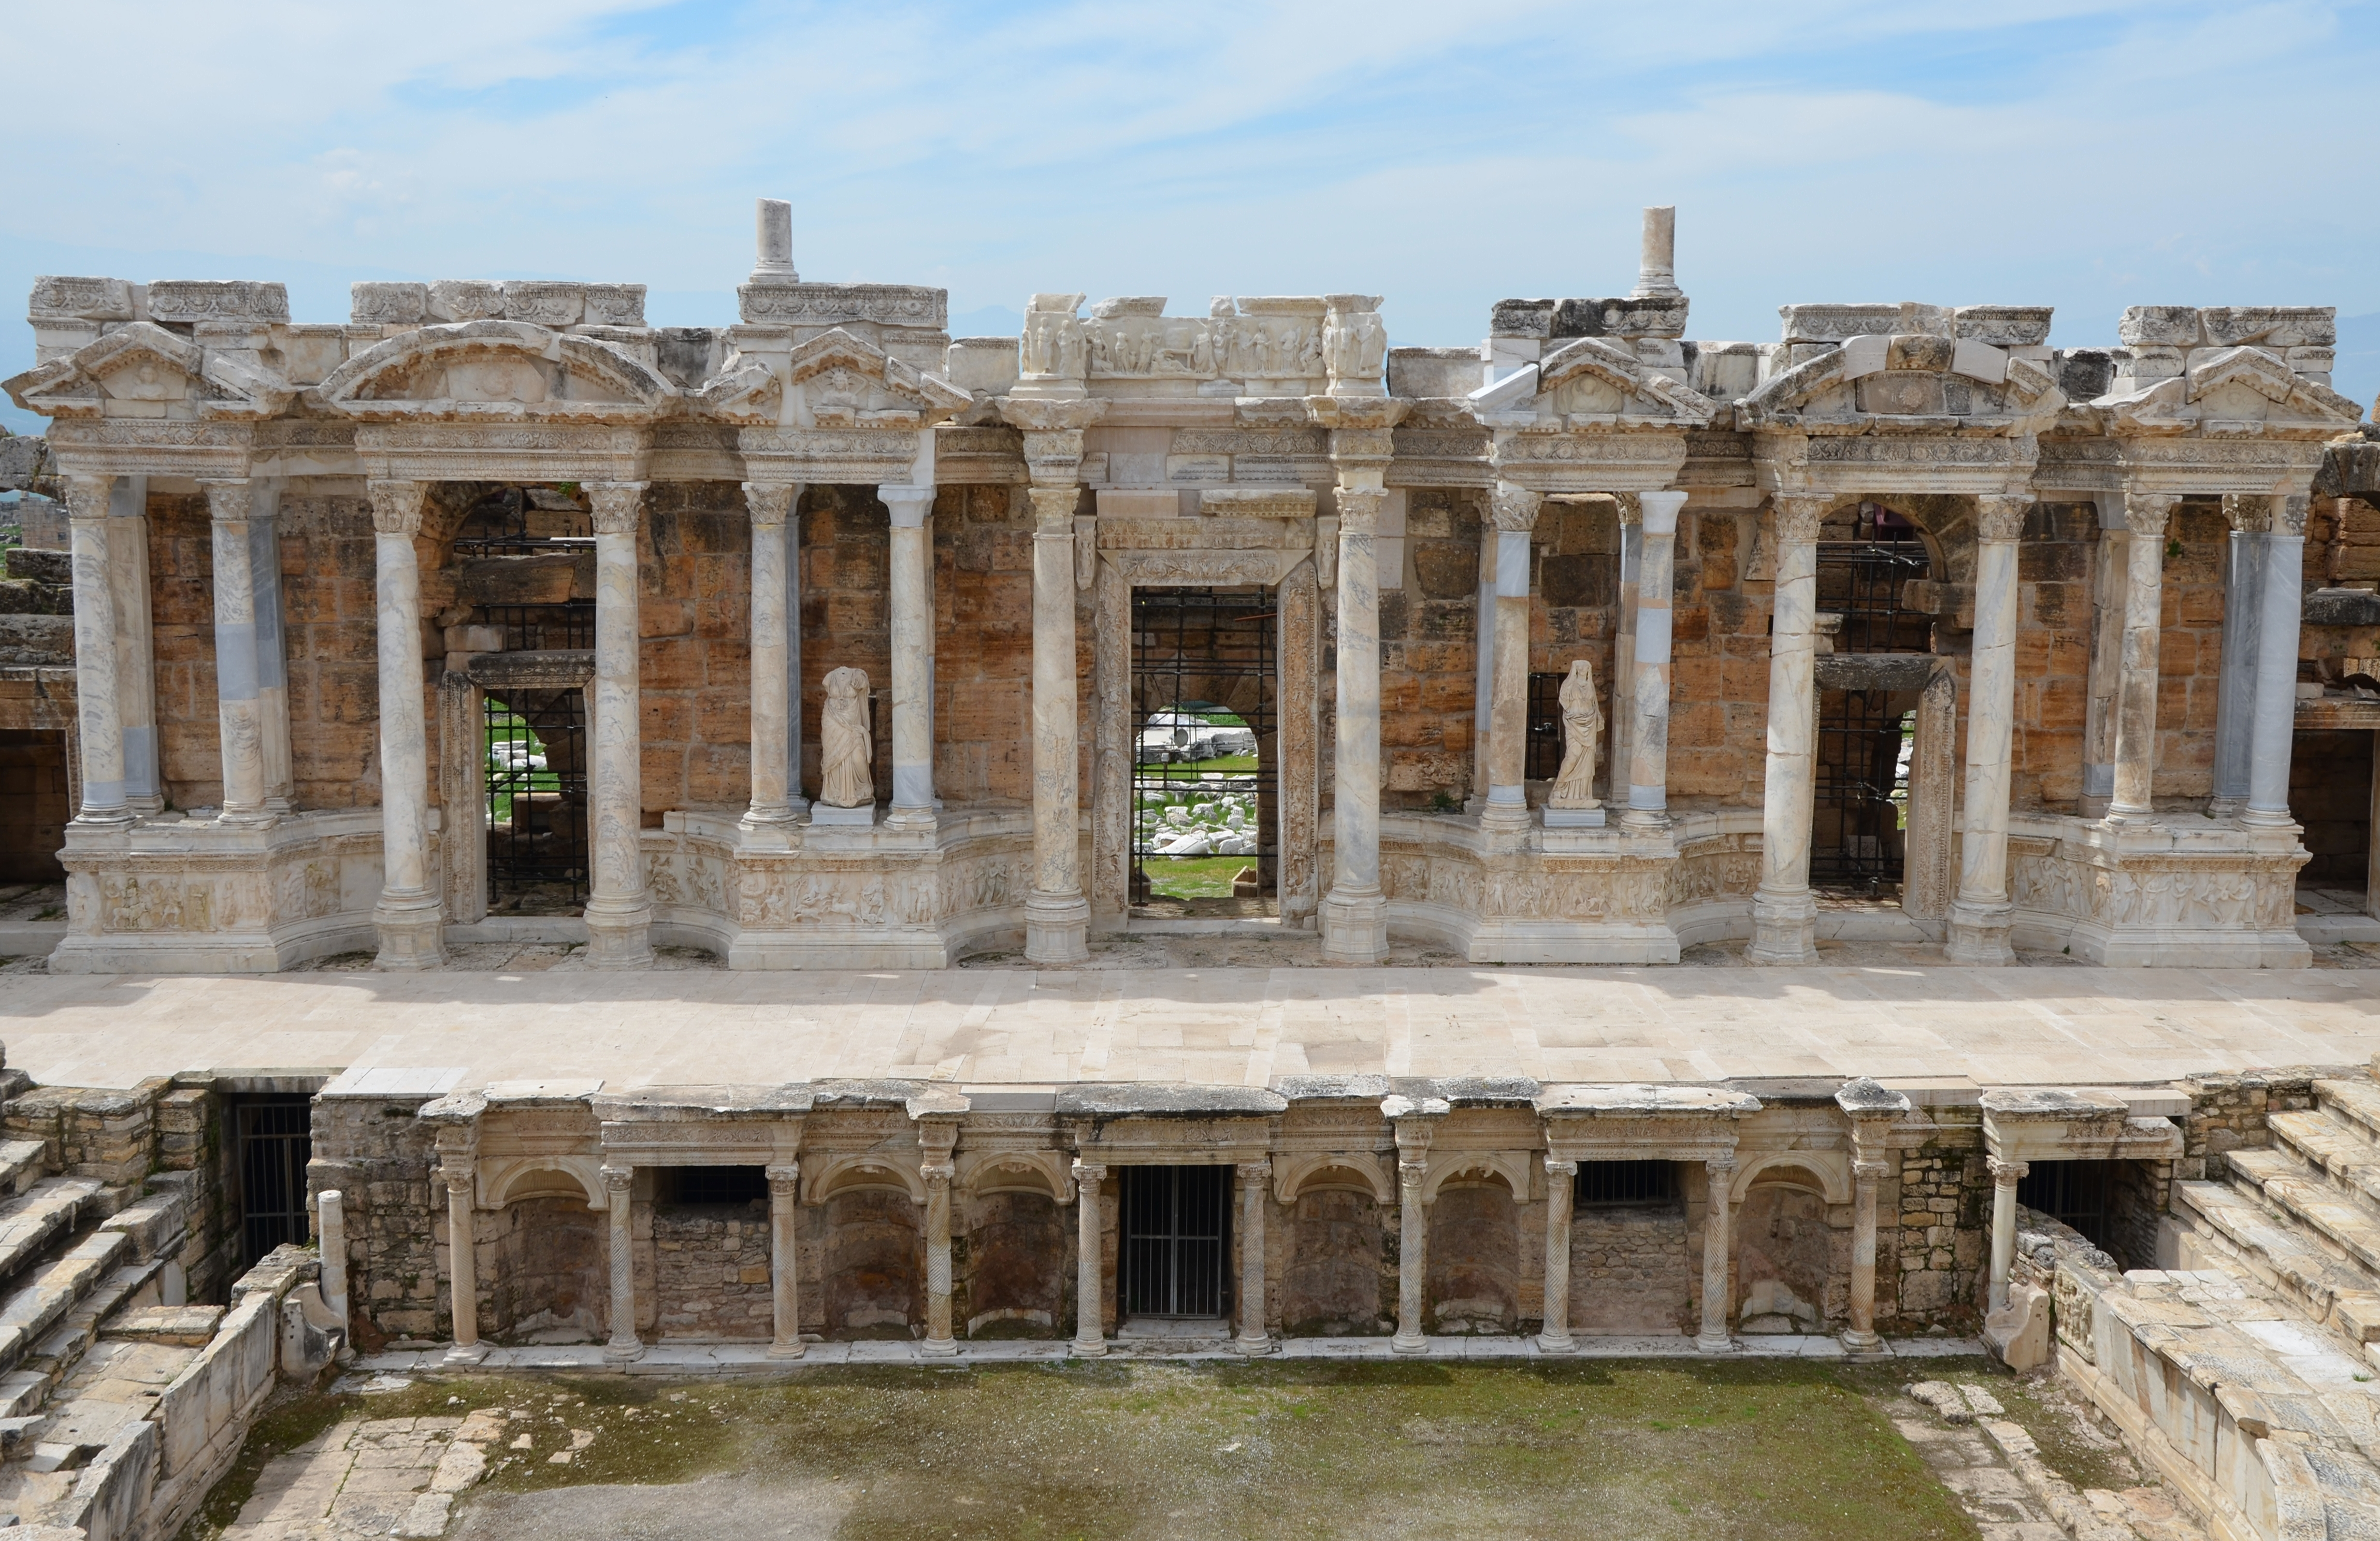 2nd century AD under Hadrian on the ruins of an earlier theatre, later renovated under Septimius Severus, Hierapolis, Turkey (16601191263).jpg The Roman